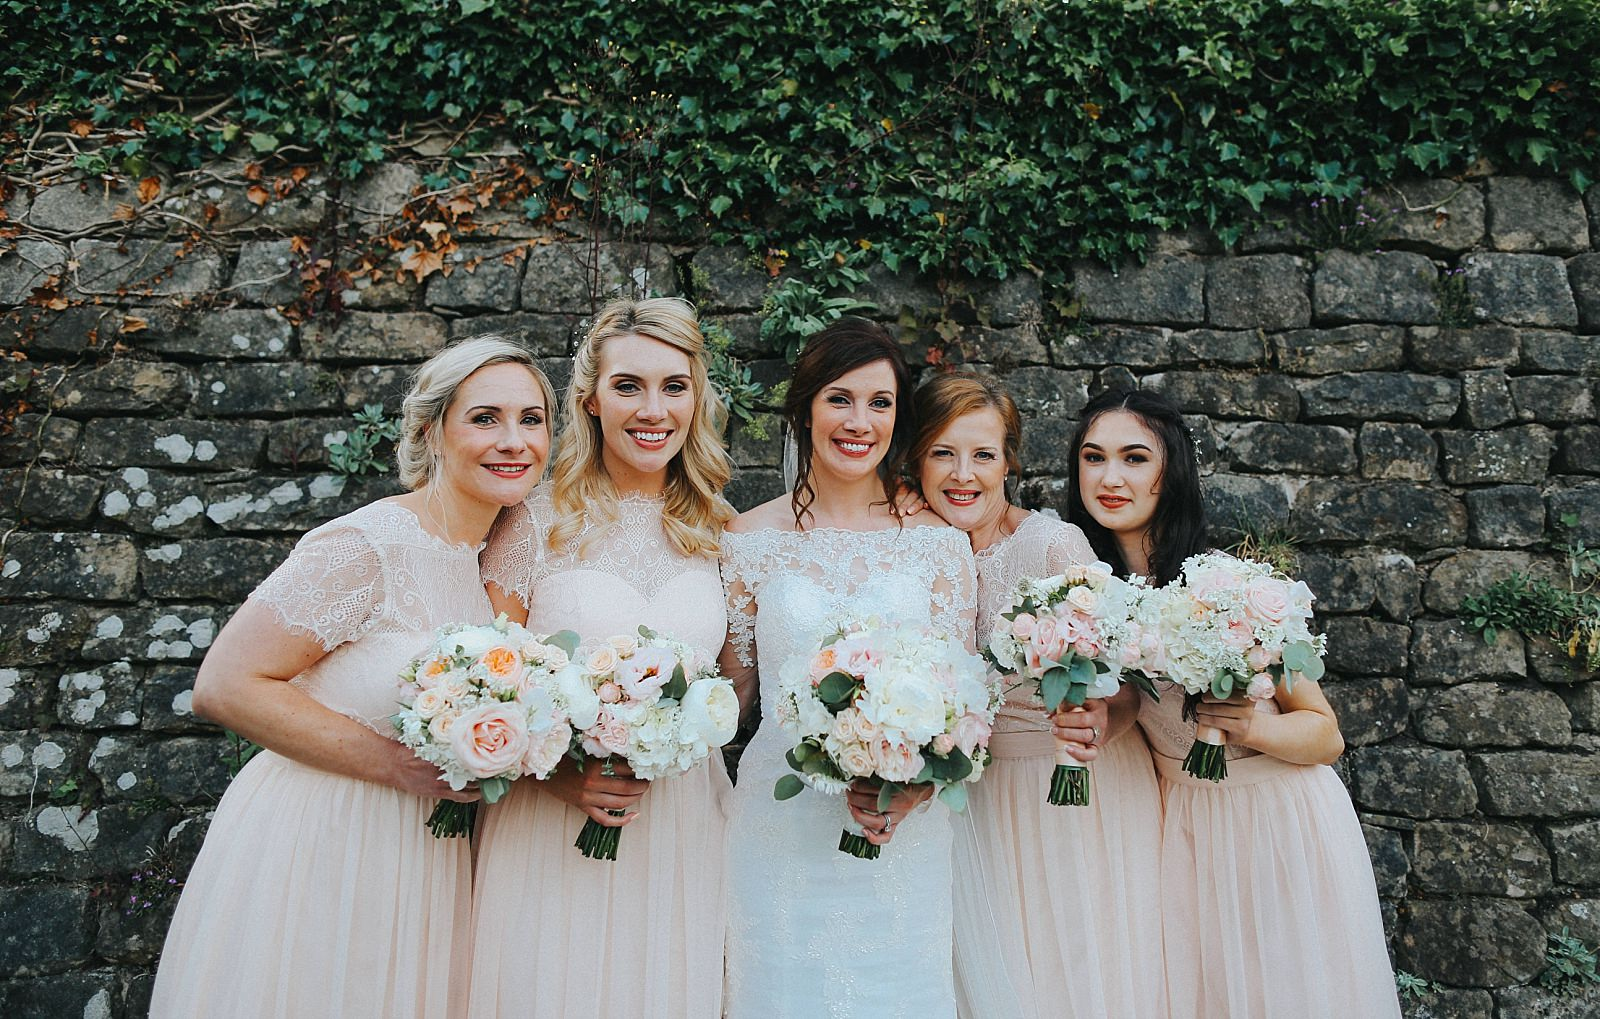 eaves hall wedding photographer captures the beautiful bridesmaids